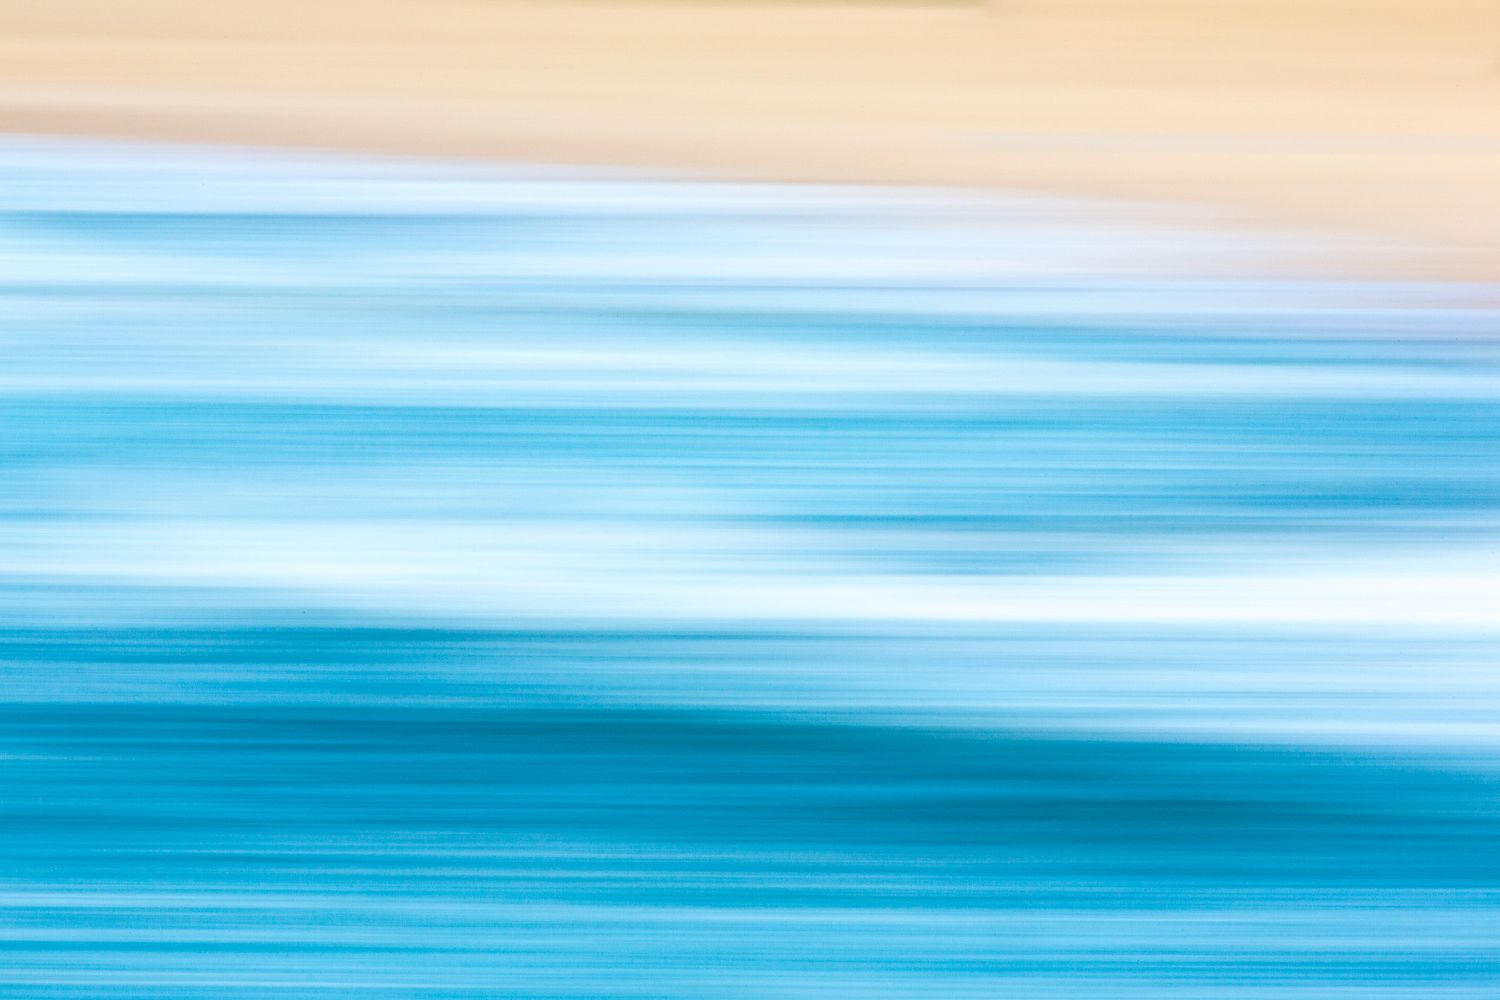 Salty Gallery offers unframed prints of our ocean imagery